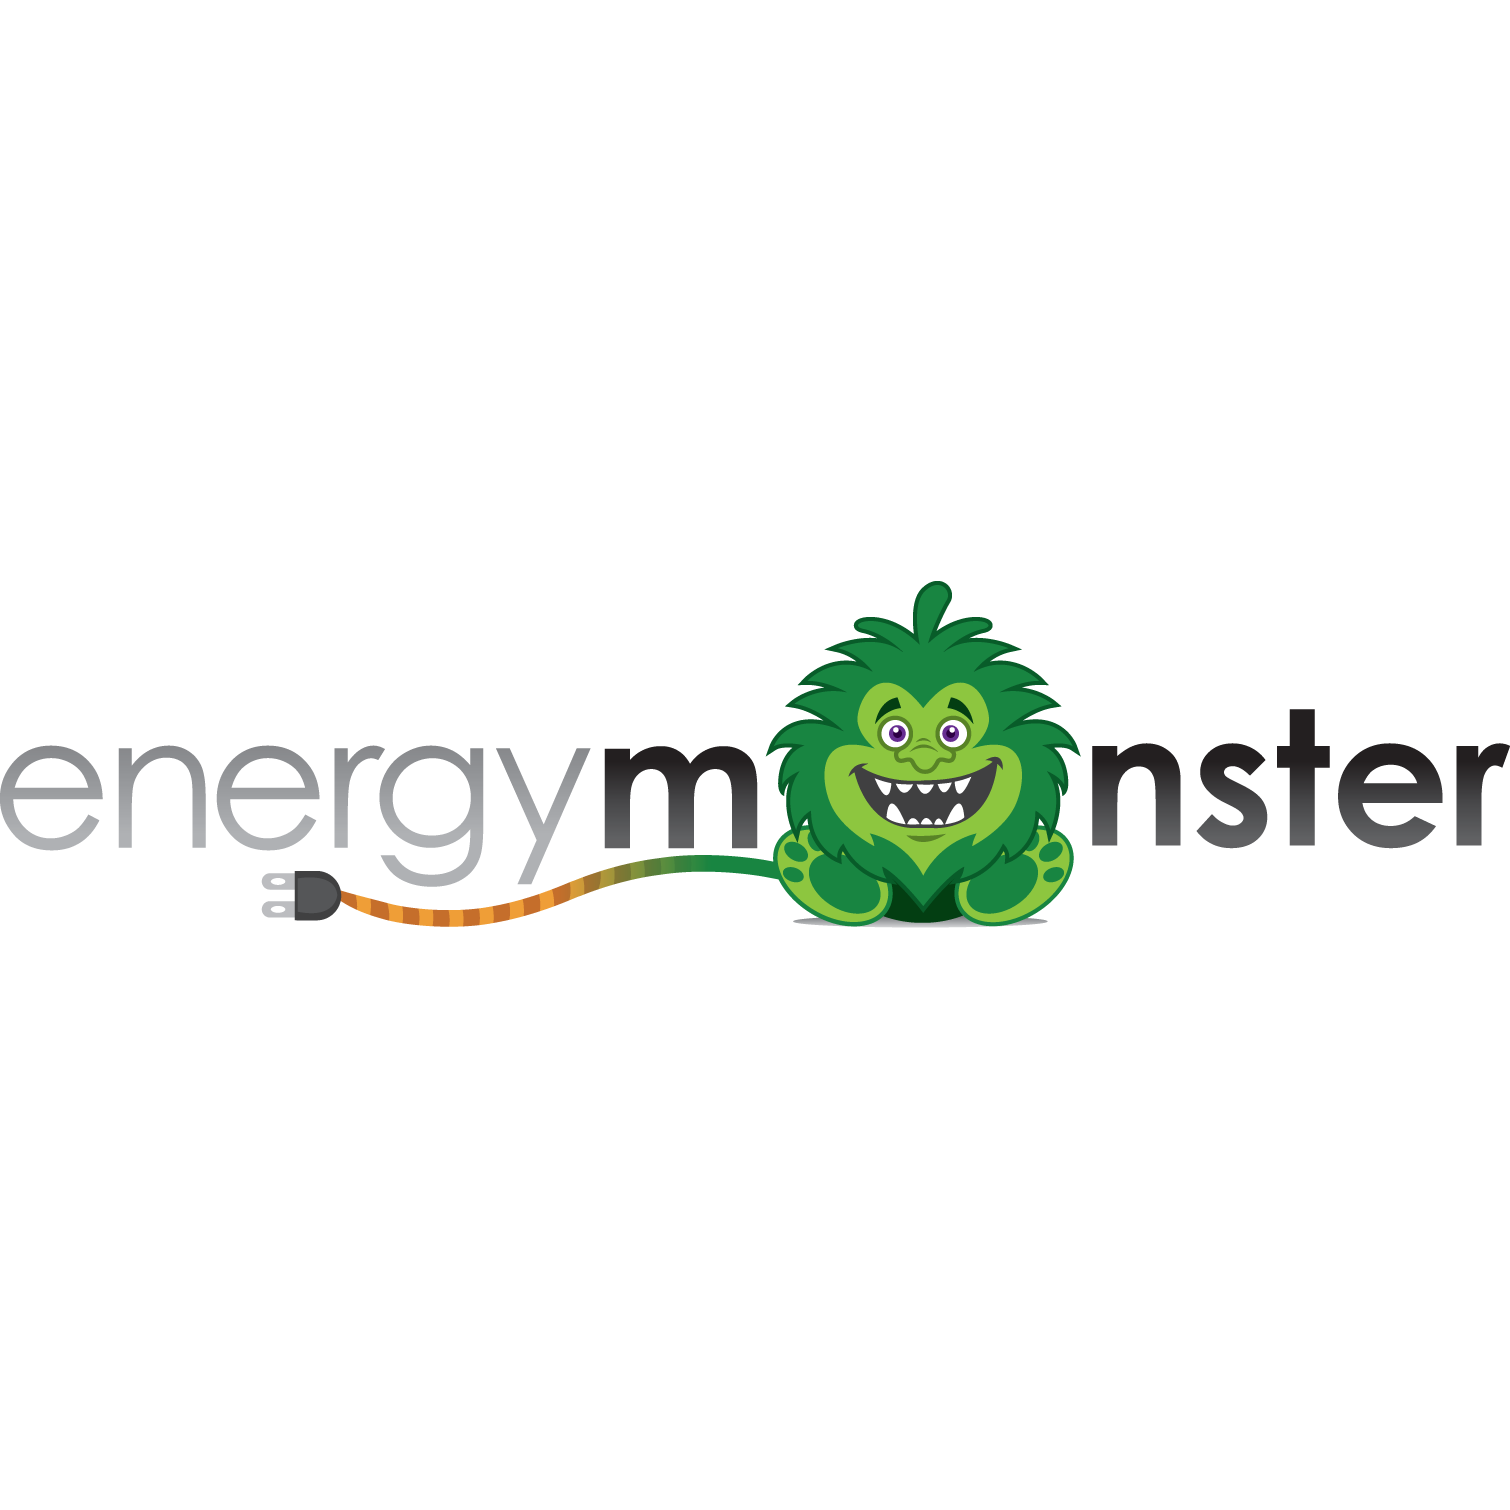 Energy Monster - ad image